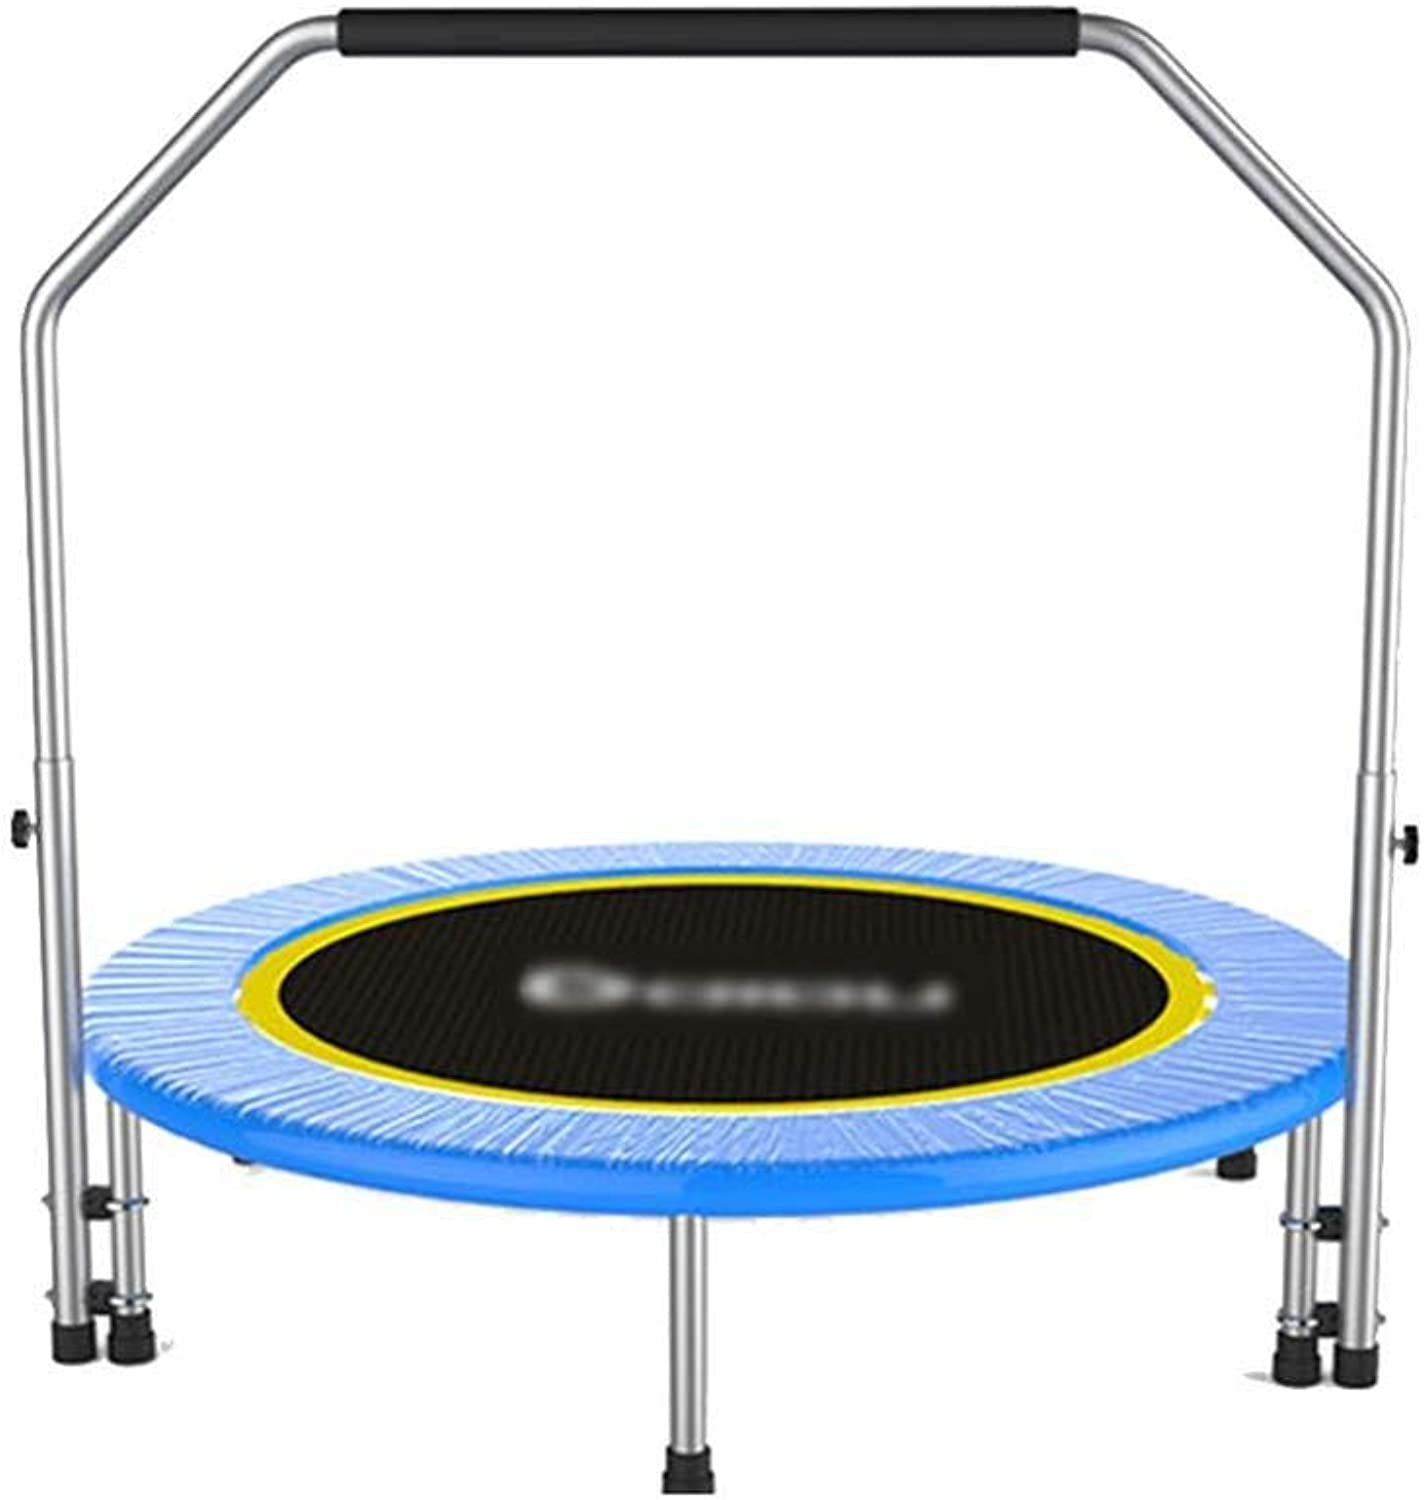 ZJW Trampoline Folding 40 inch with Adjustable Handle, Indoor for Indoor Garden Workout Cardio Training Kids and Adults,A,Trampolines